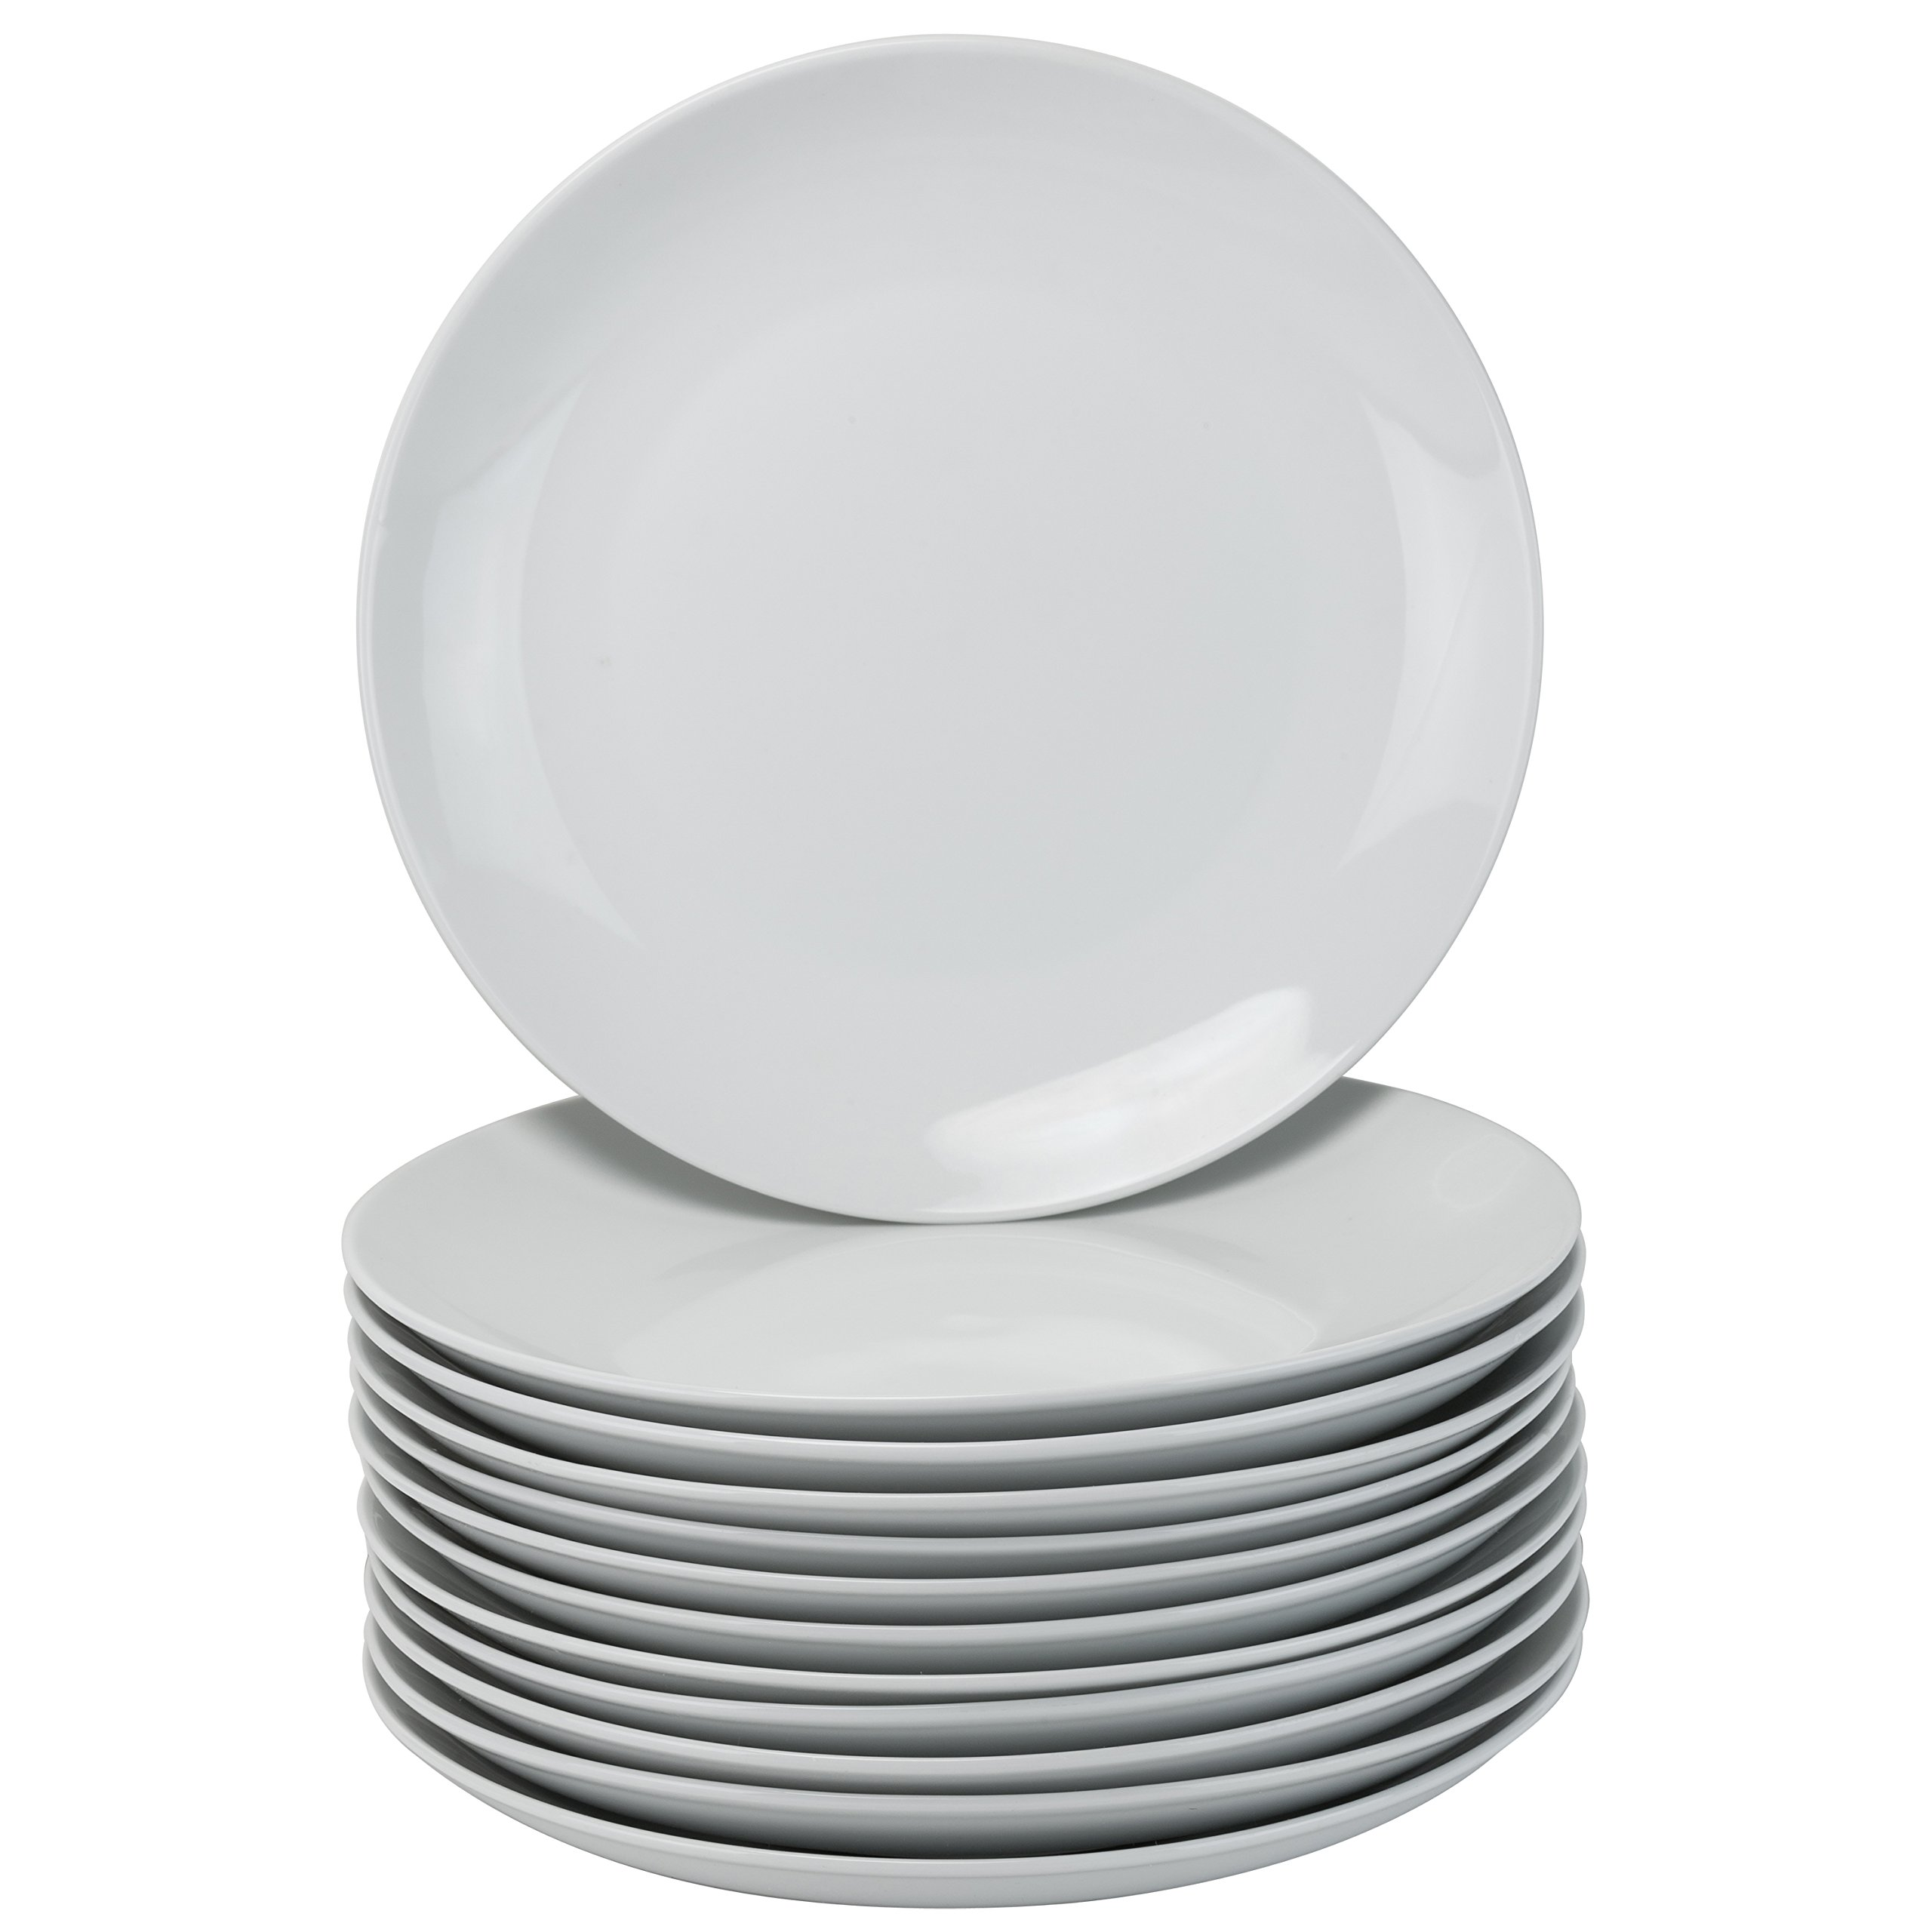 10 Strawberry Street CATERING-12CPDIN Dinner Plates, White by 10 Strawberry Street